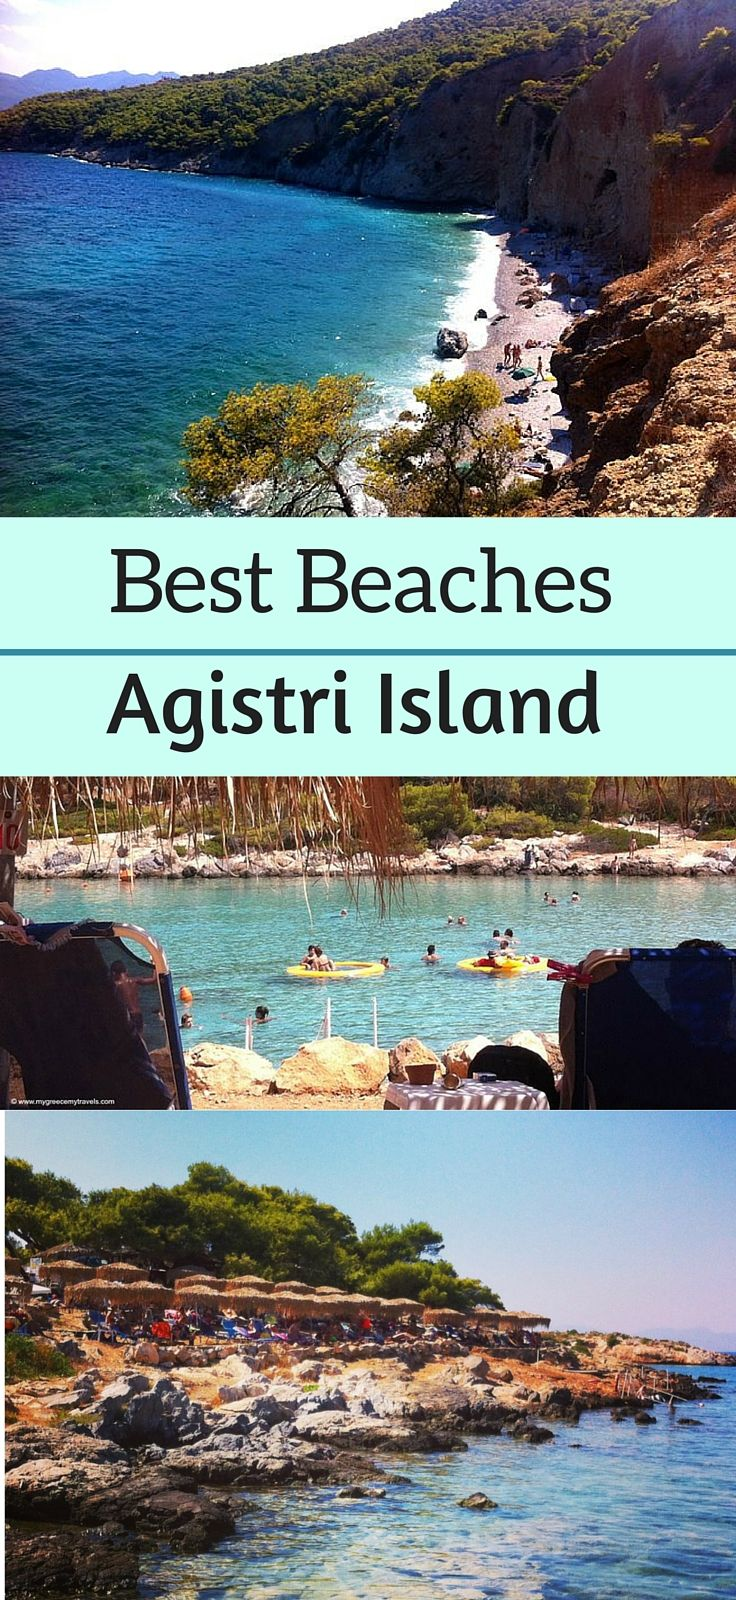 Check out the best beaches of Agisitri, a Saronic island just an hour away via ferry from Athens.